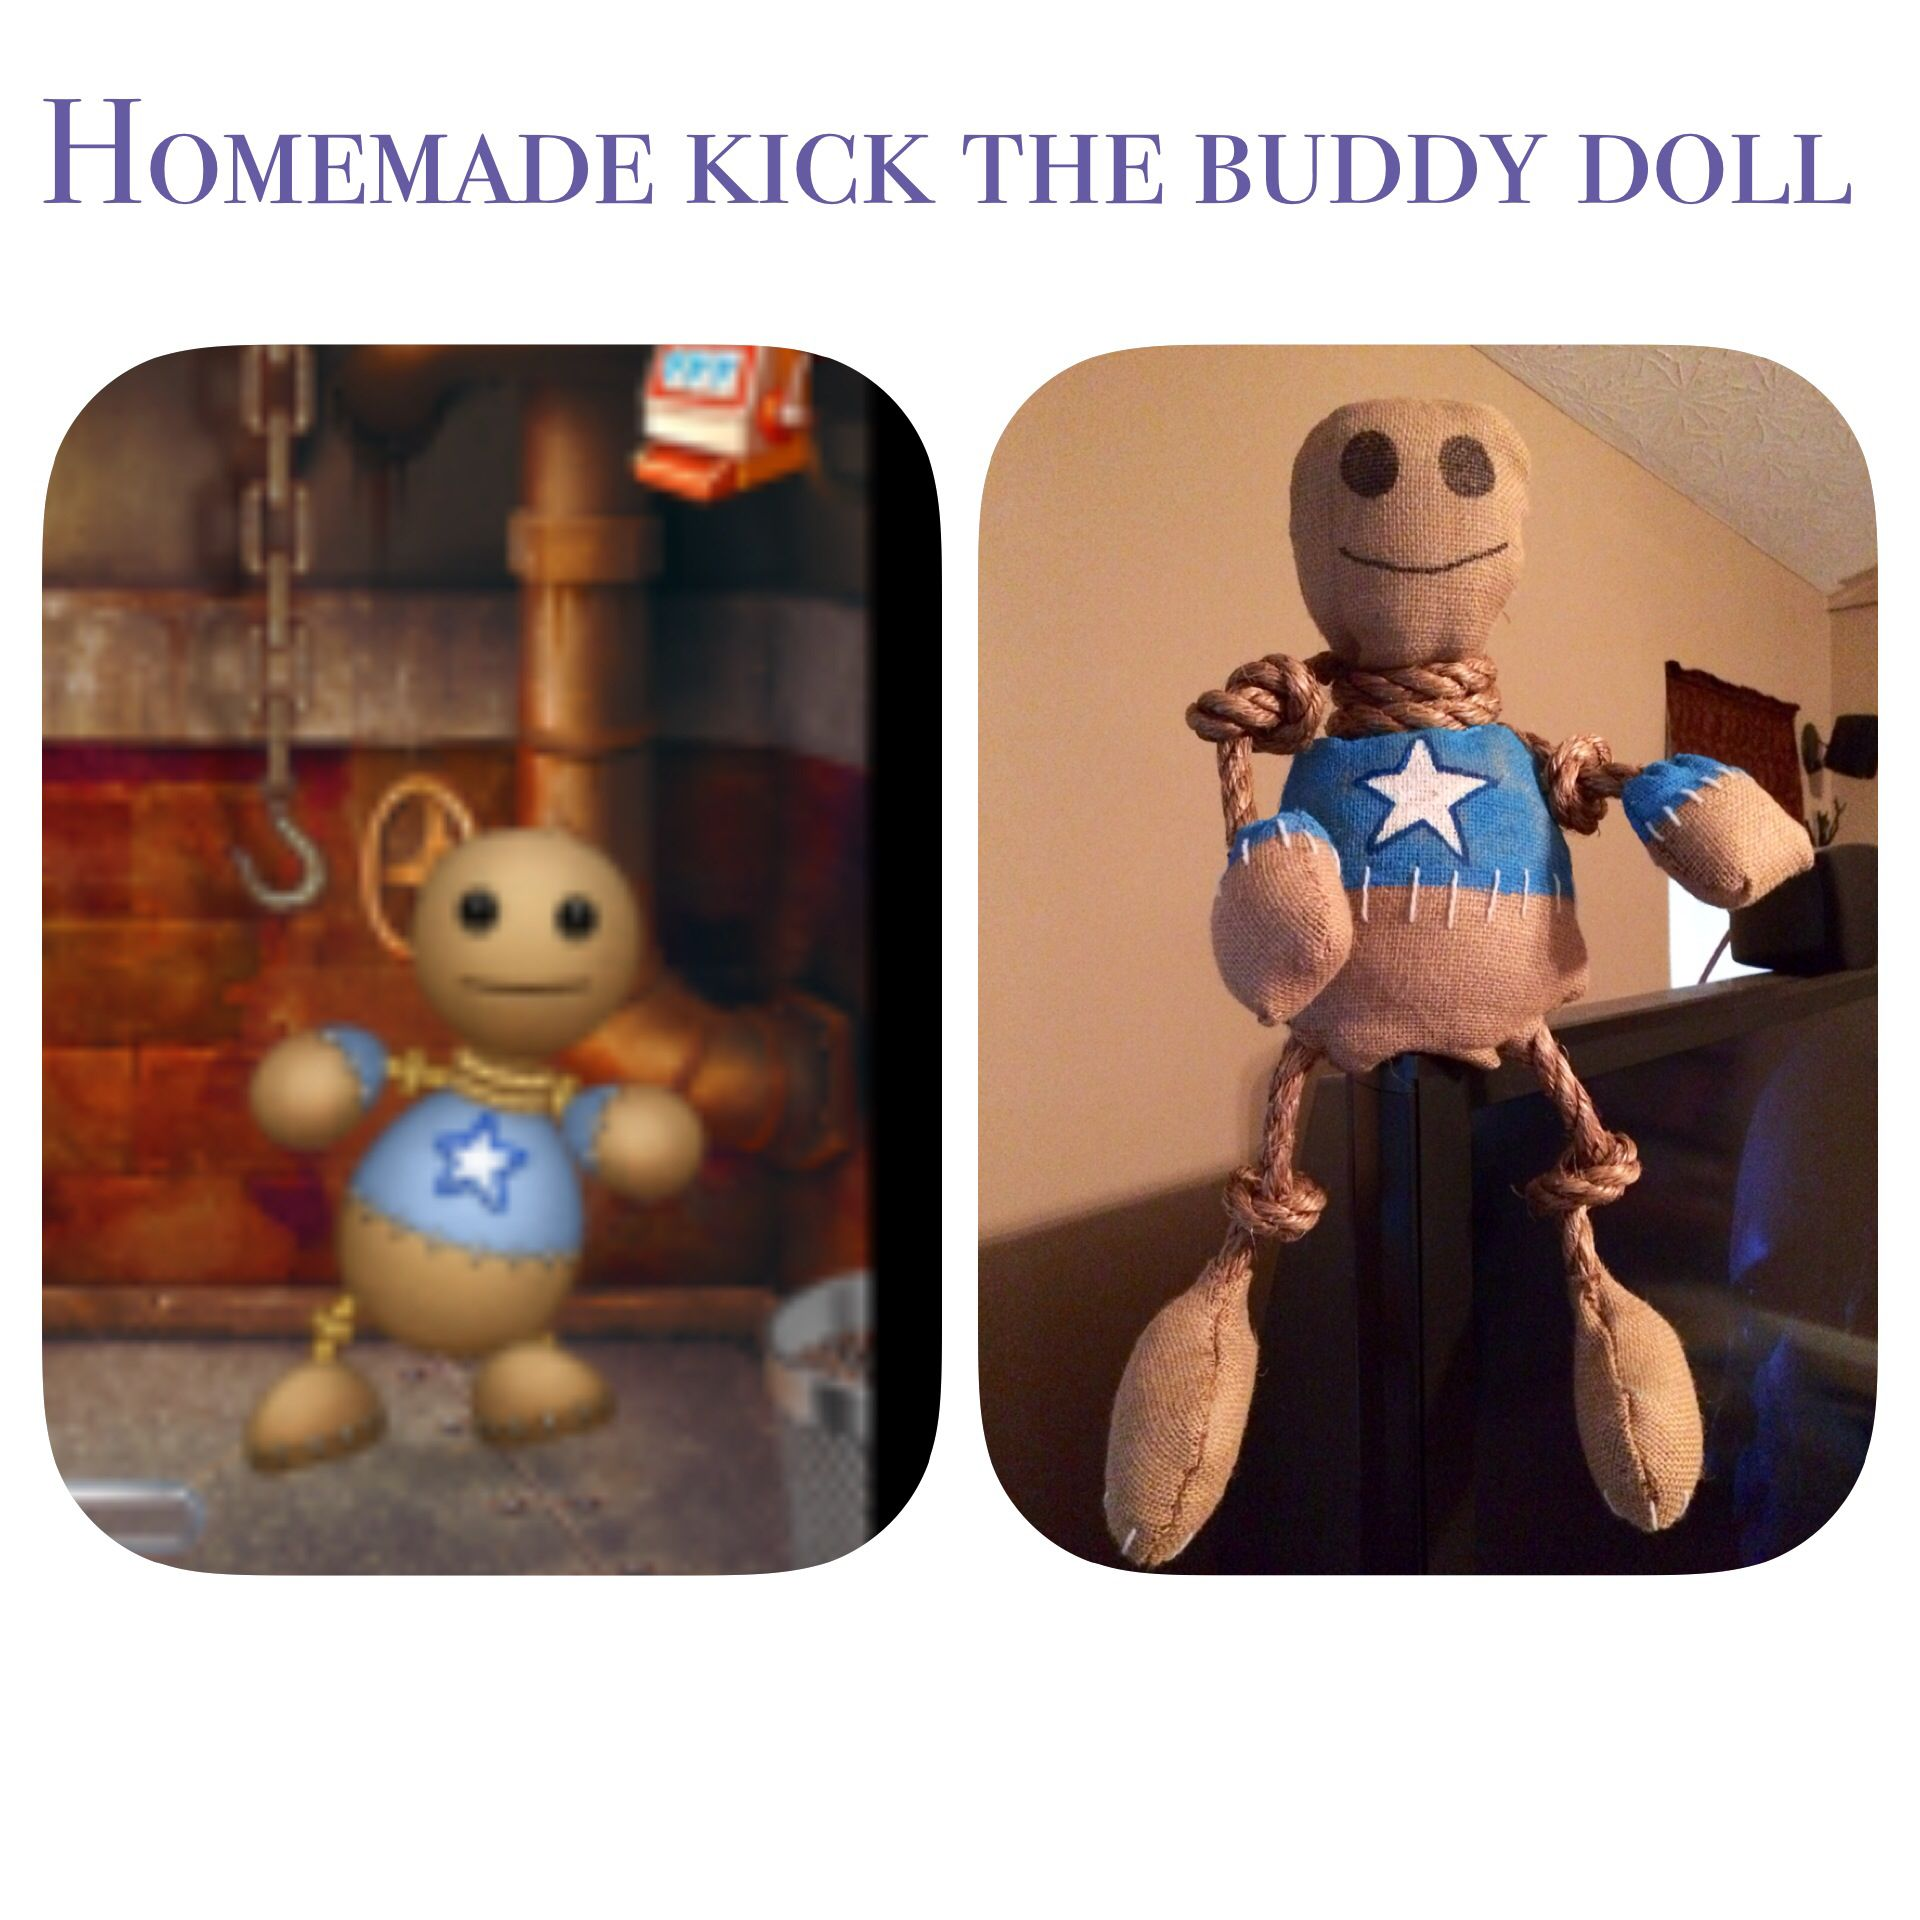 My 8 Yr Old Son Wanted A Kick The Buddy Doll Just Like His